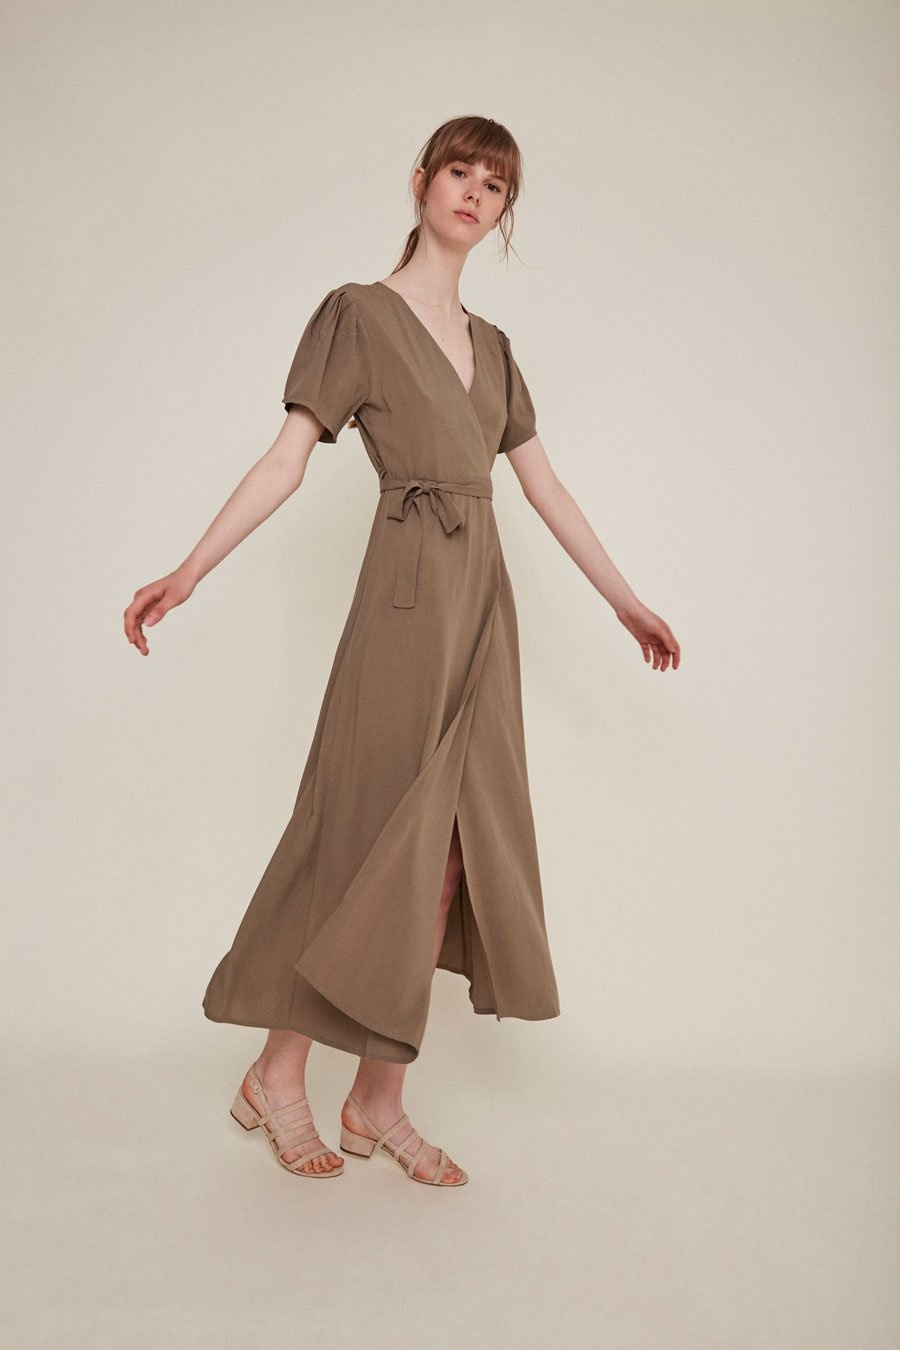 Rita Row Silvia Dress in Topo